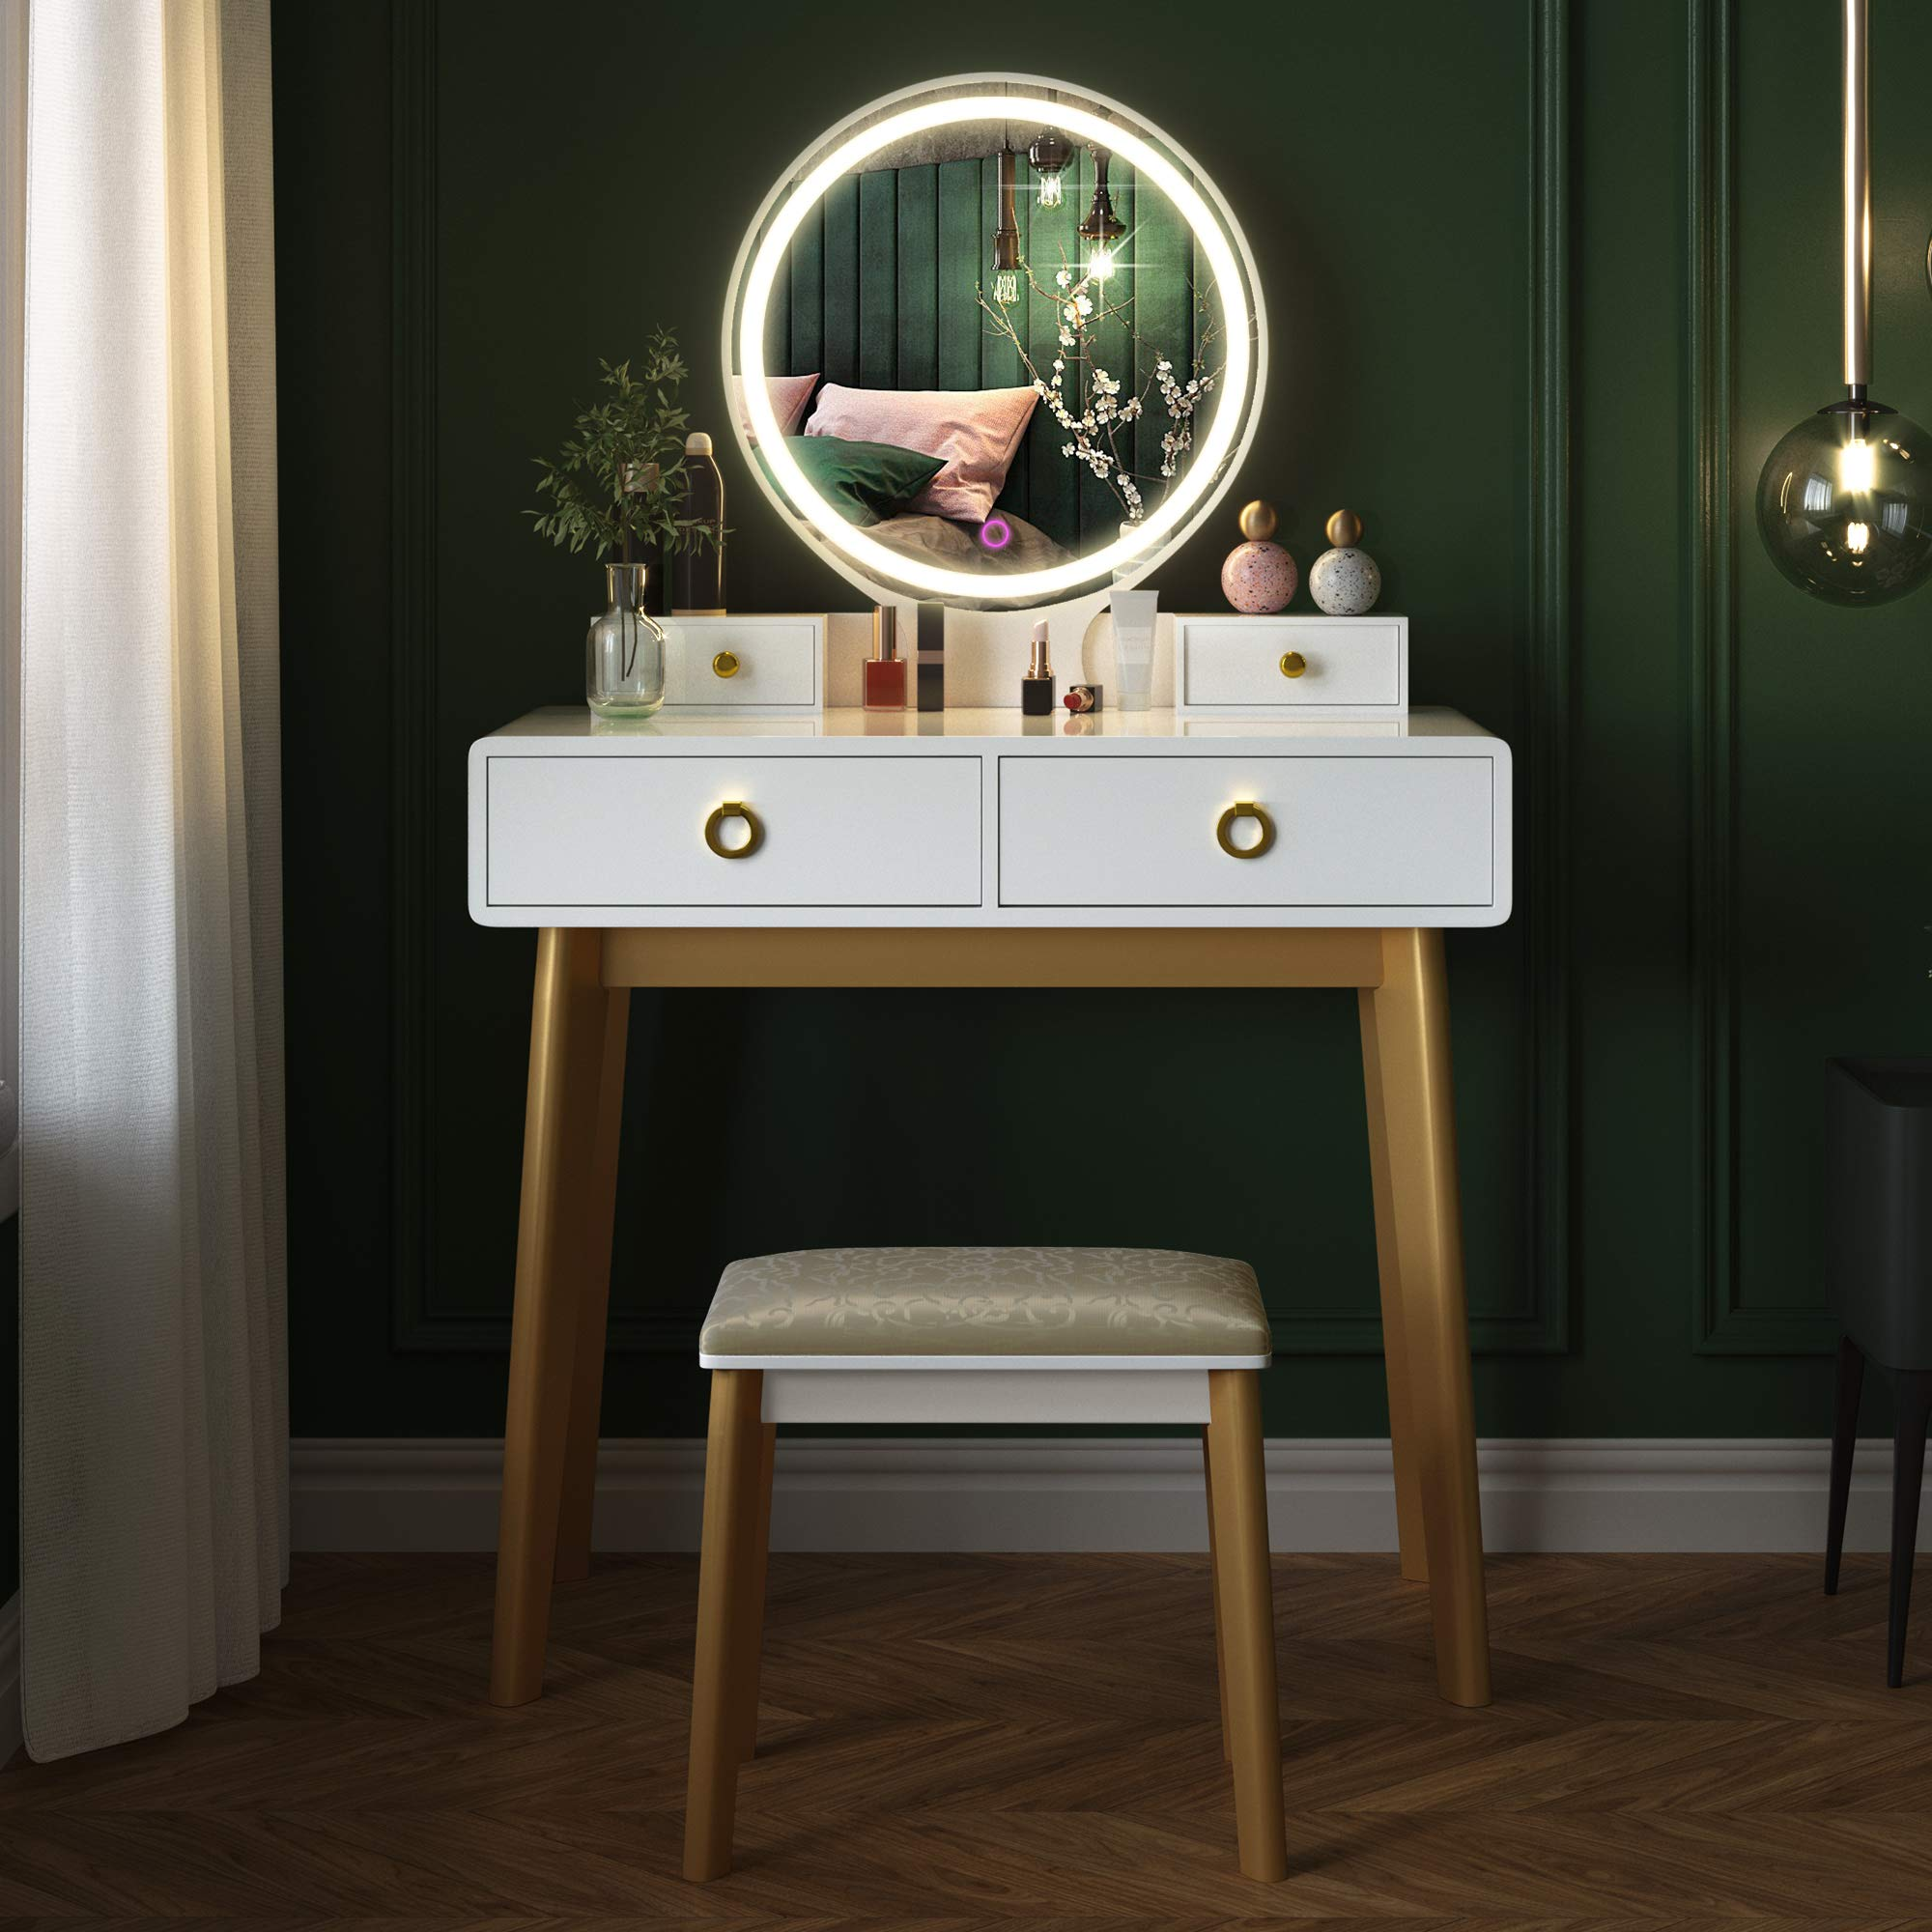 Vanity Table Set,Makeup Table with Oval Mirror & Stool, Bedroom Wood Dressing Table with 4 Storage Drawers White